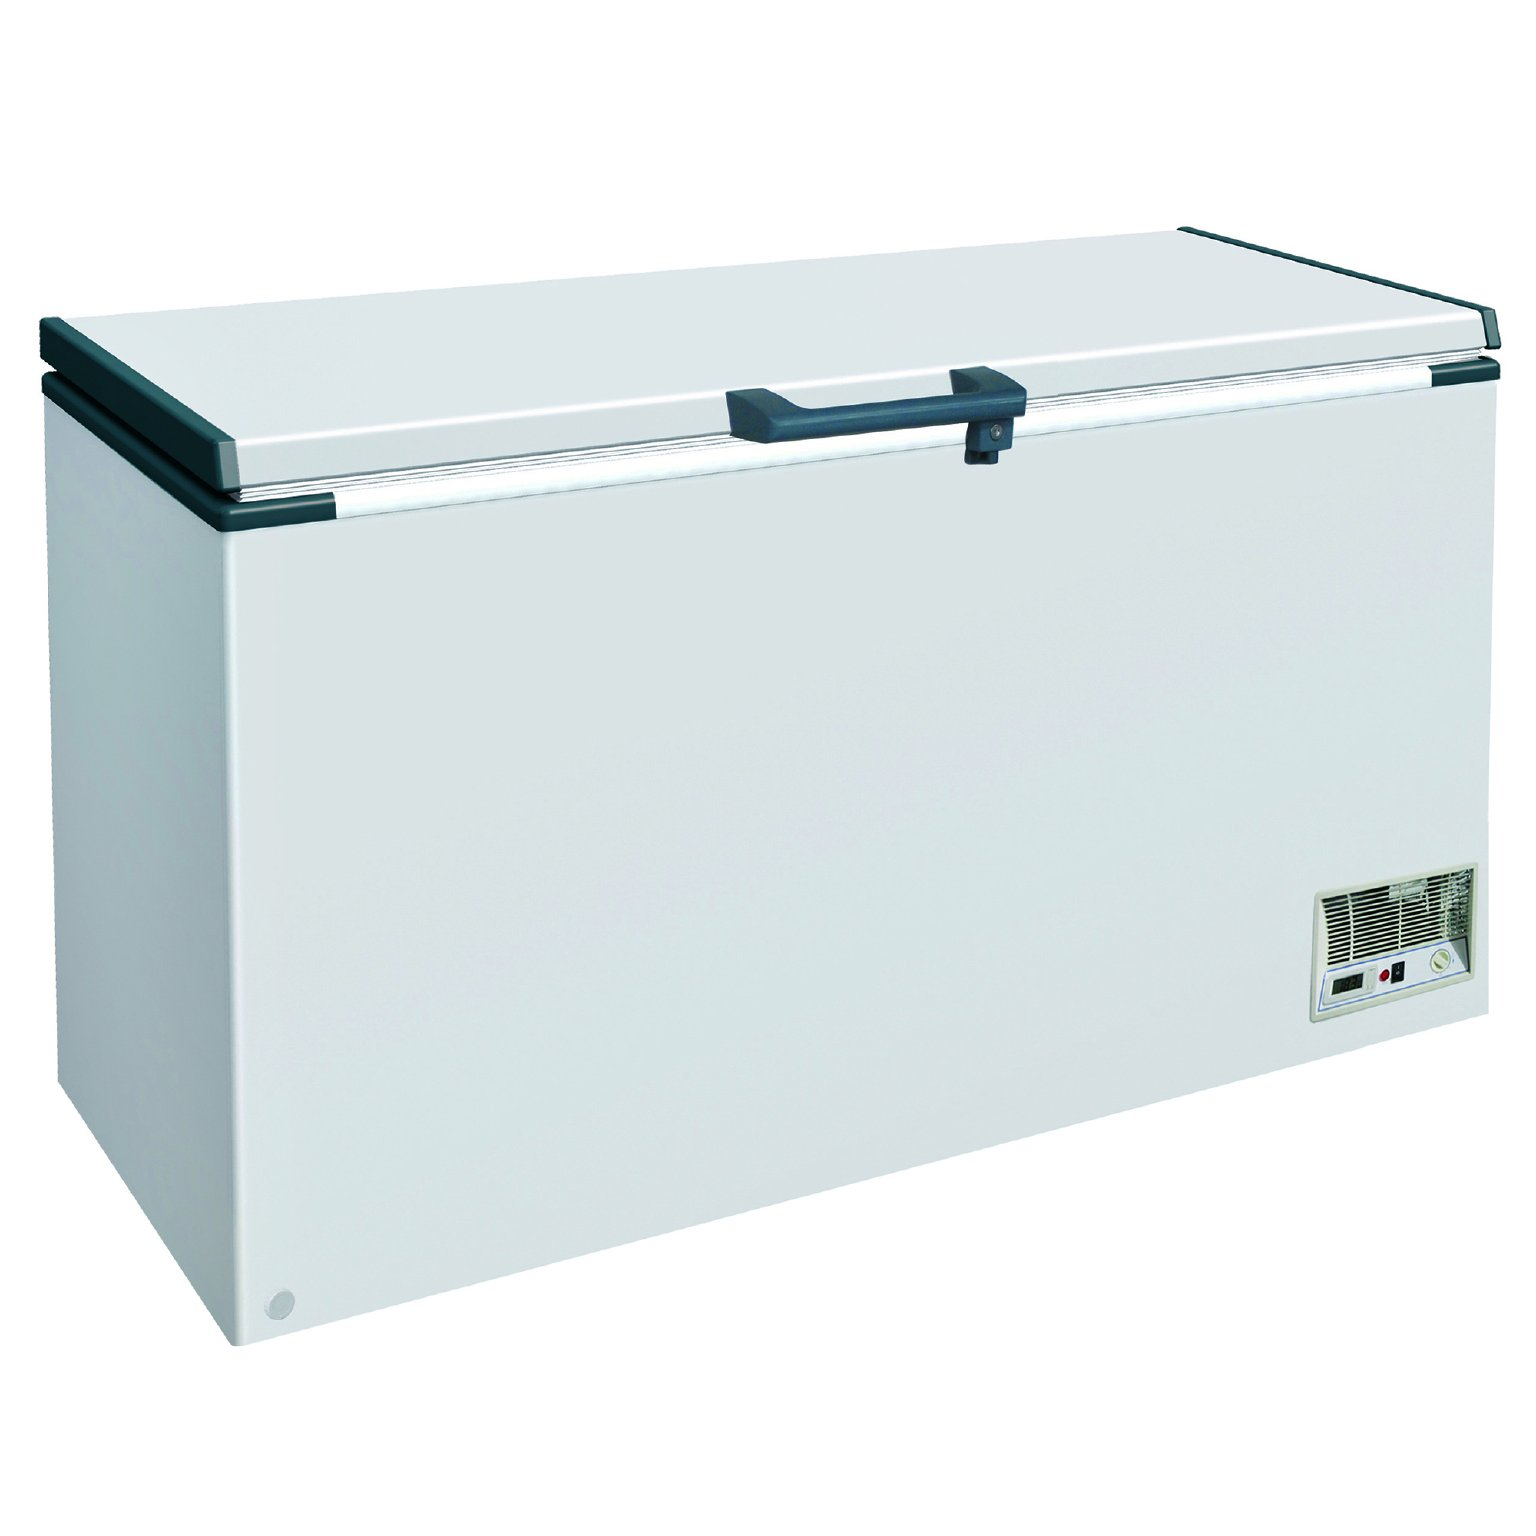 DUURA DVCF14.2 Solid Chest Freezer, White by DUURA